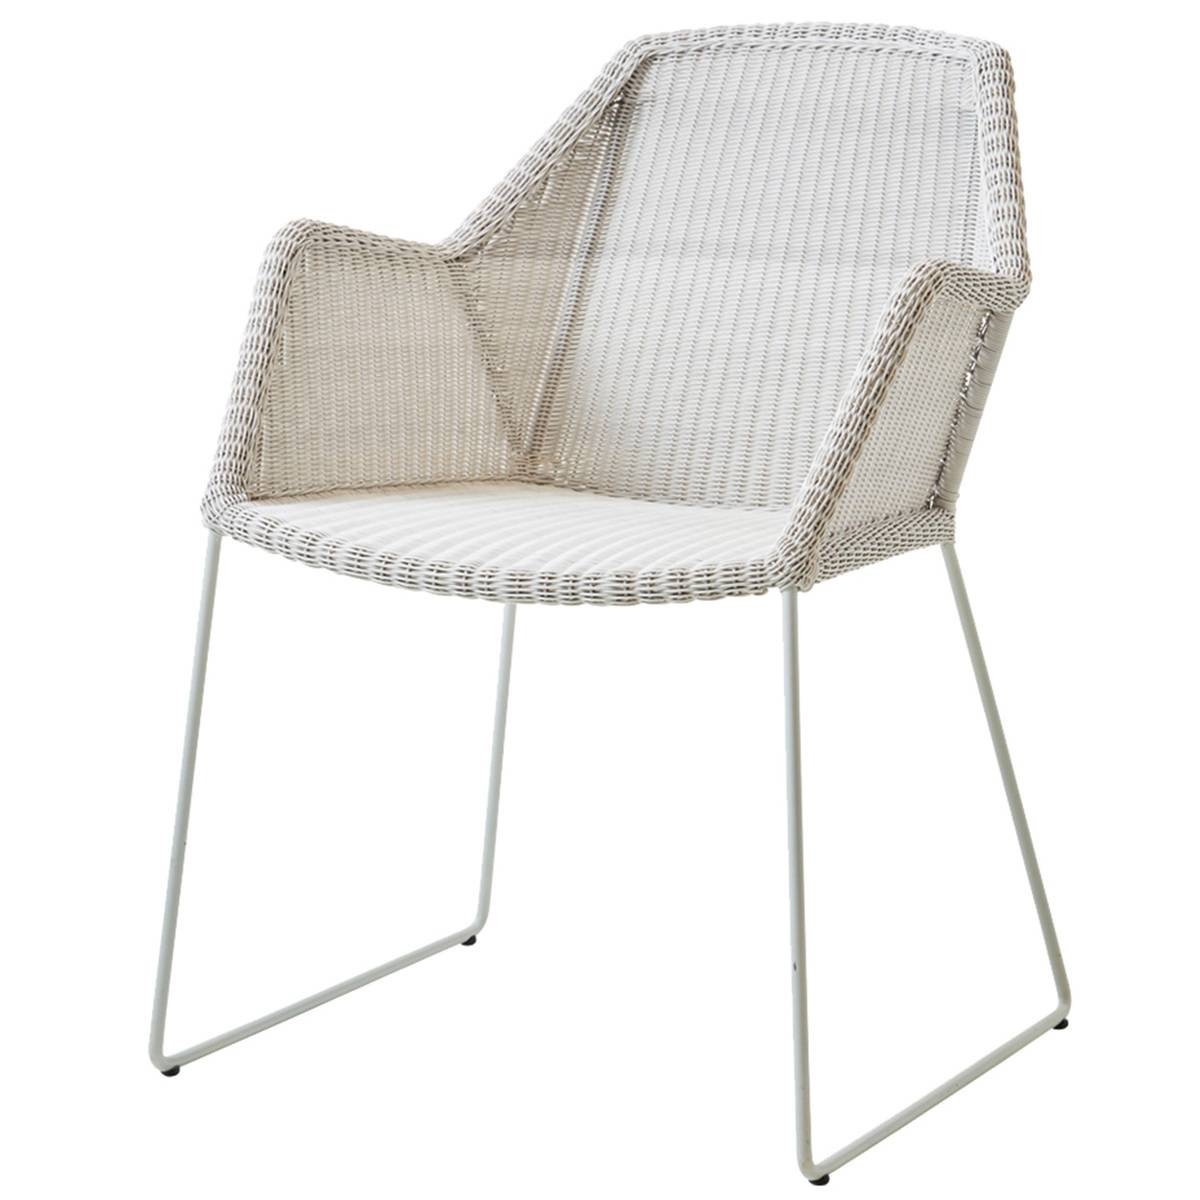 Cane-line Breeze dining chair, white grey